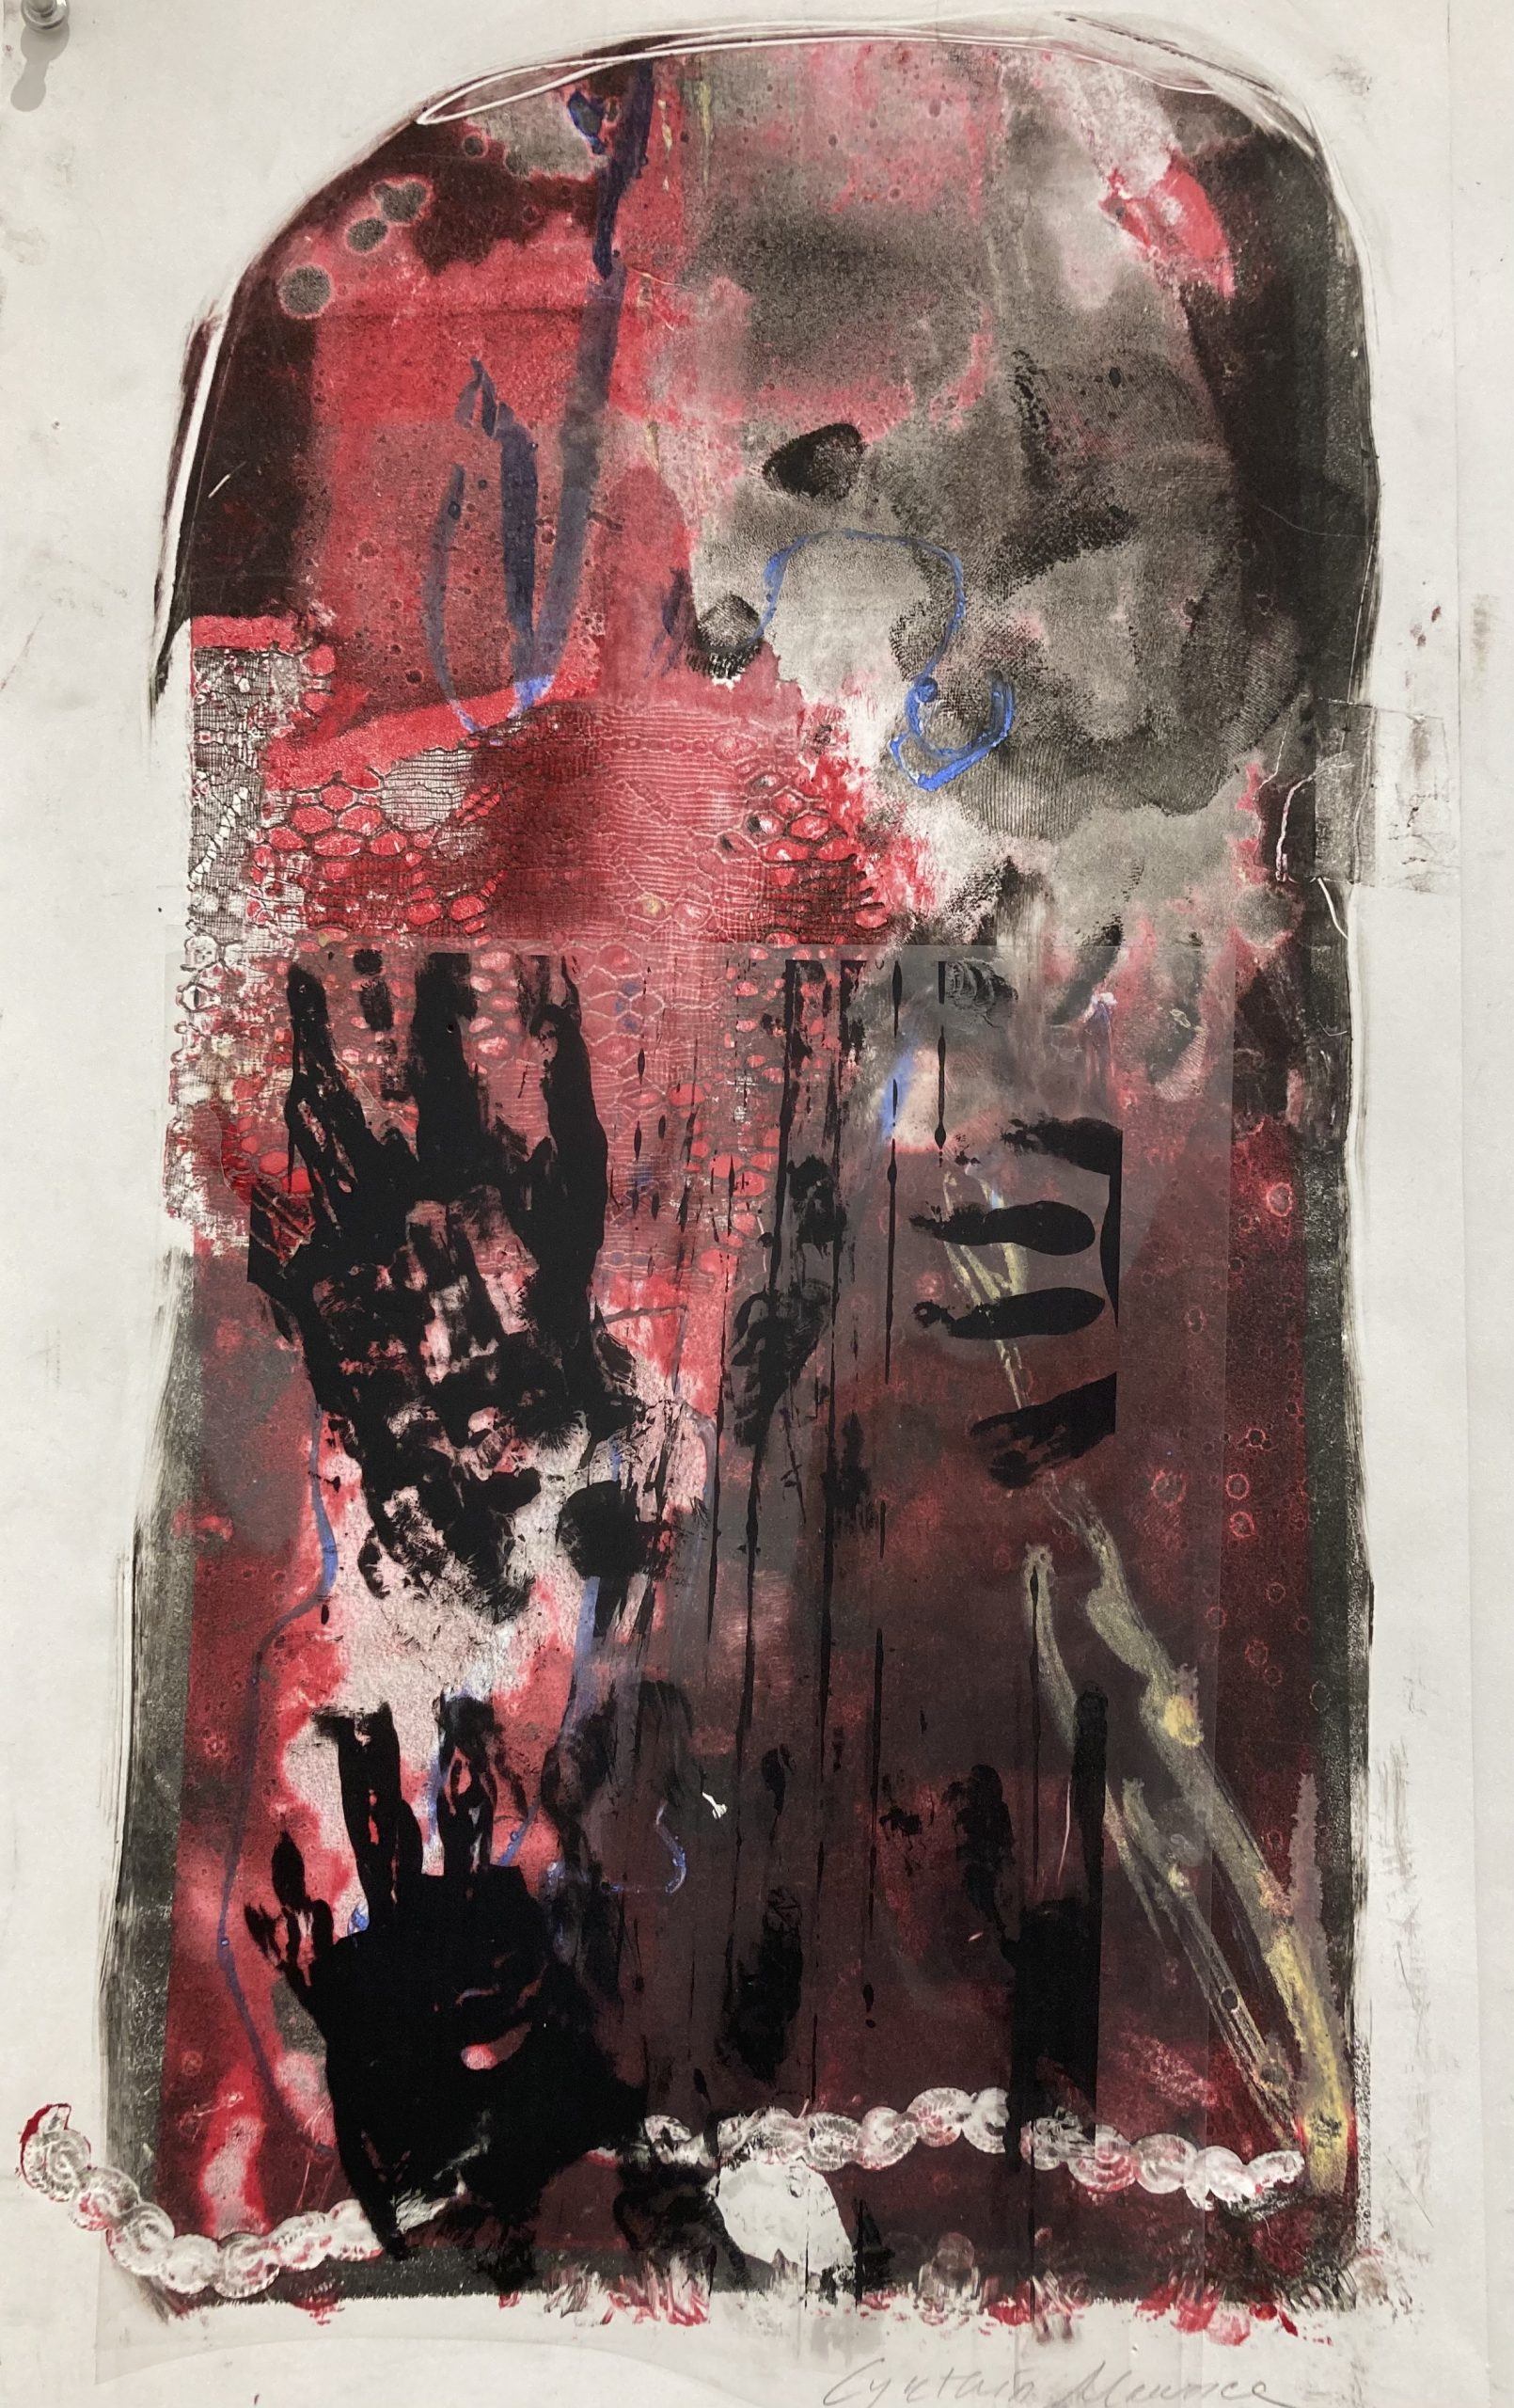 Cynthia Maurice  -  Yikes, No Flame  -  mixed media/ paint, lithograph  -  21 x 15  -  $350.00